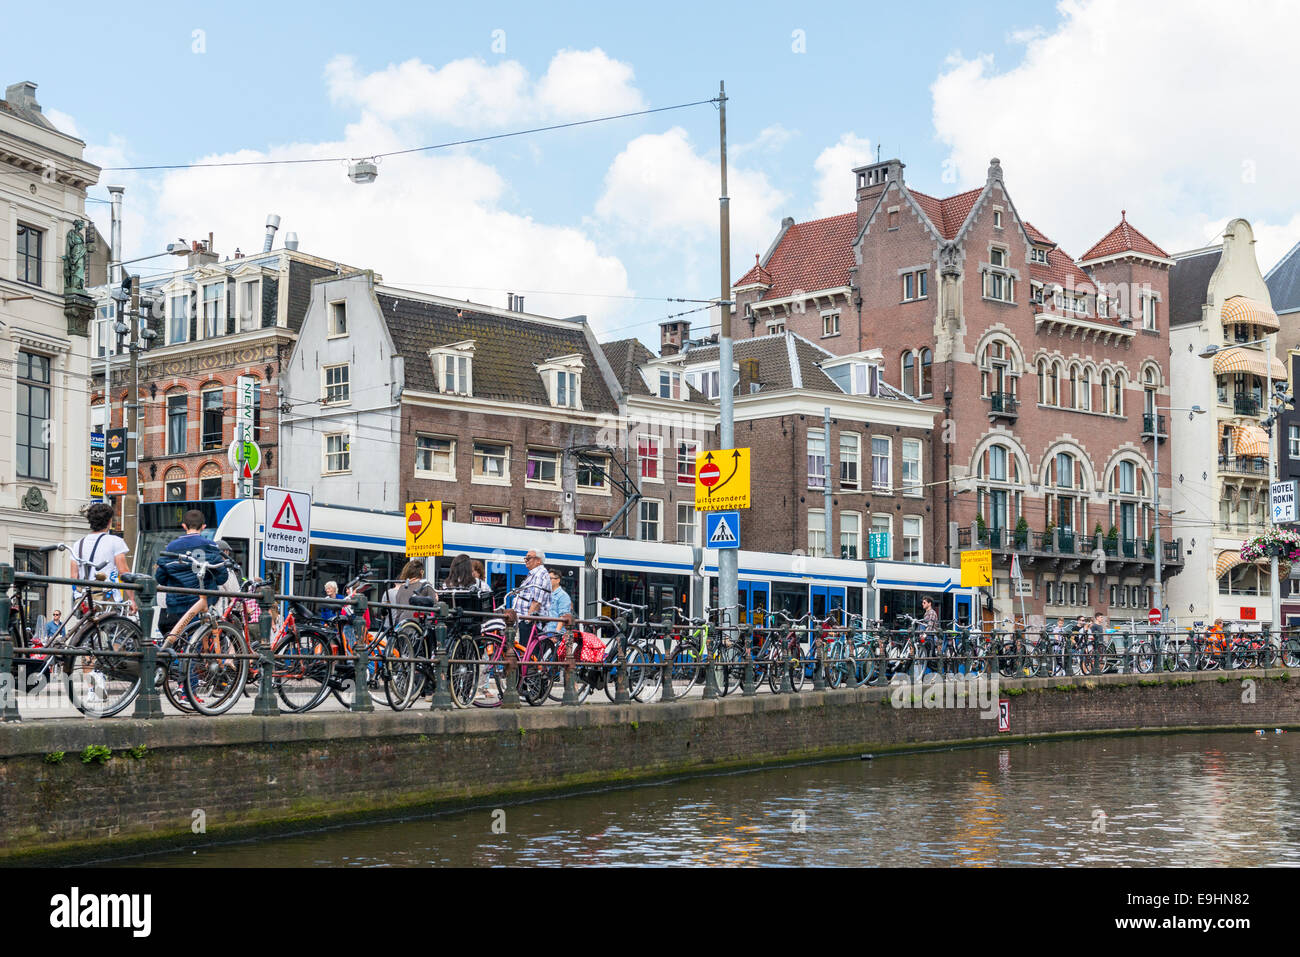 Bicycles locked to the railings along a canal in the city of Amsterdam, Netherlands - Stock Image